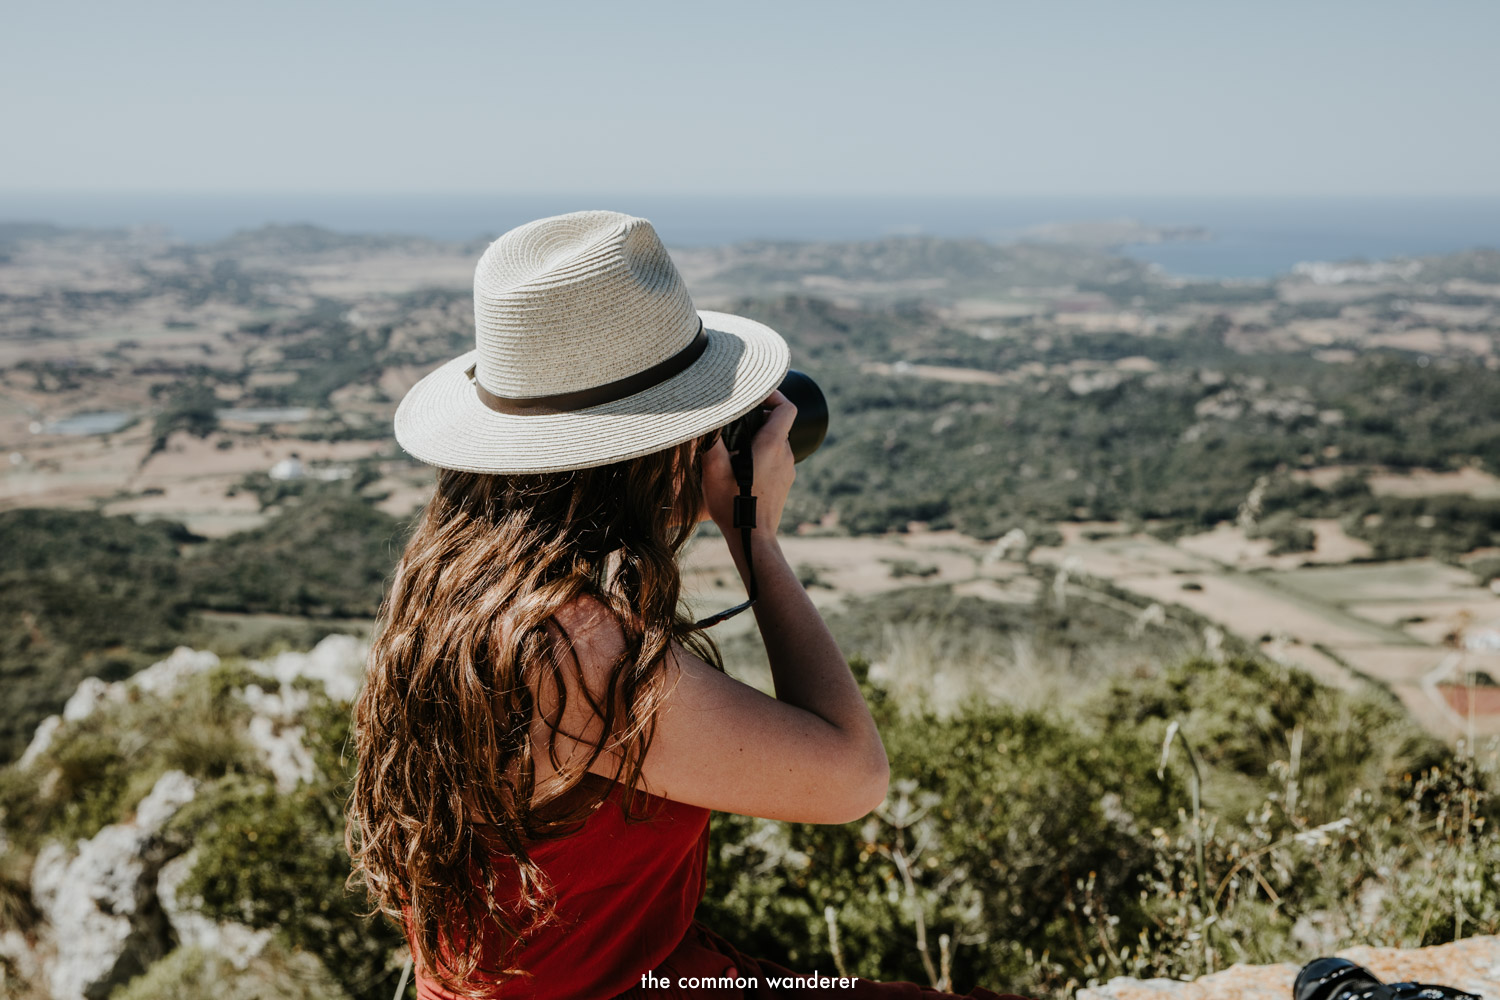 A woman takes a photo over Menorca from Monte Toro, Spain